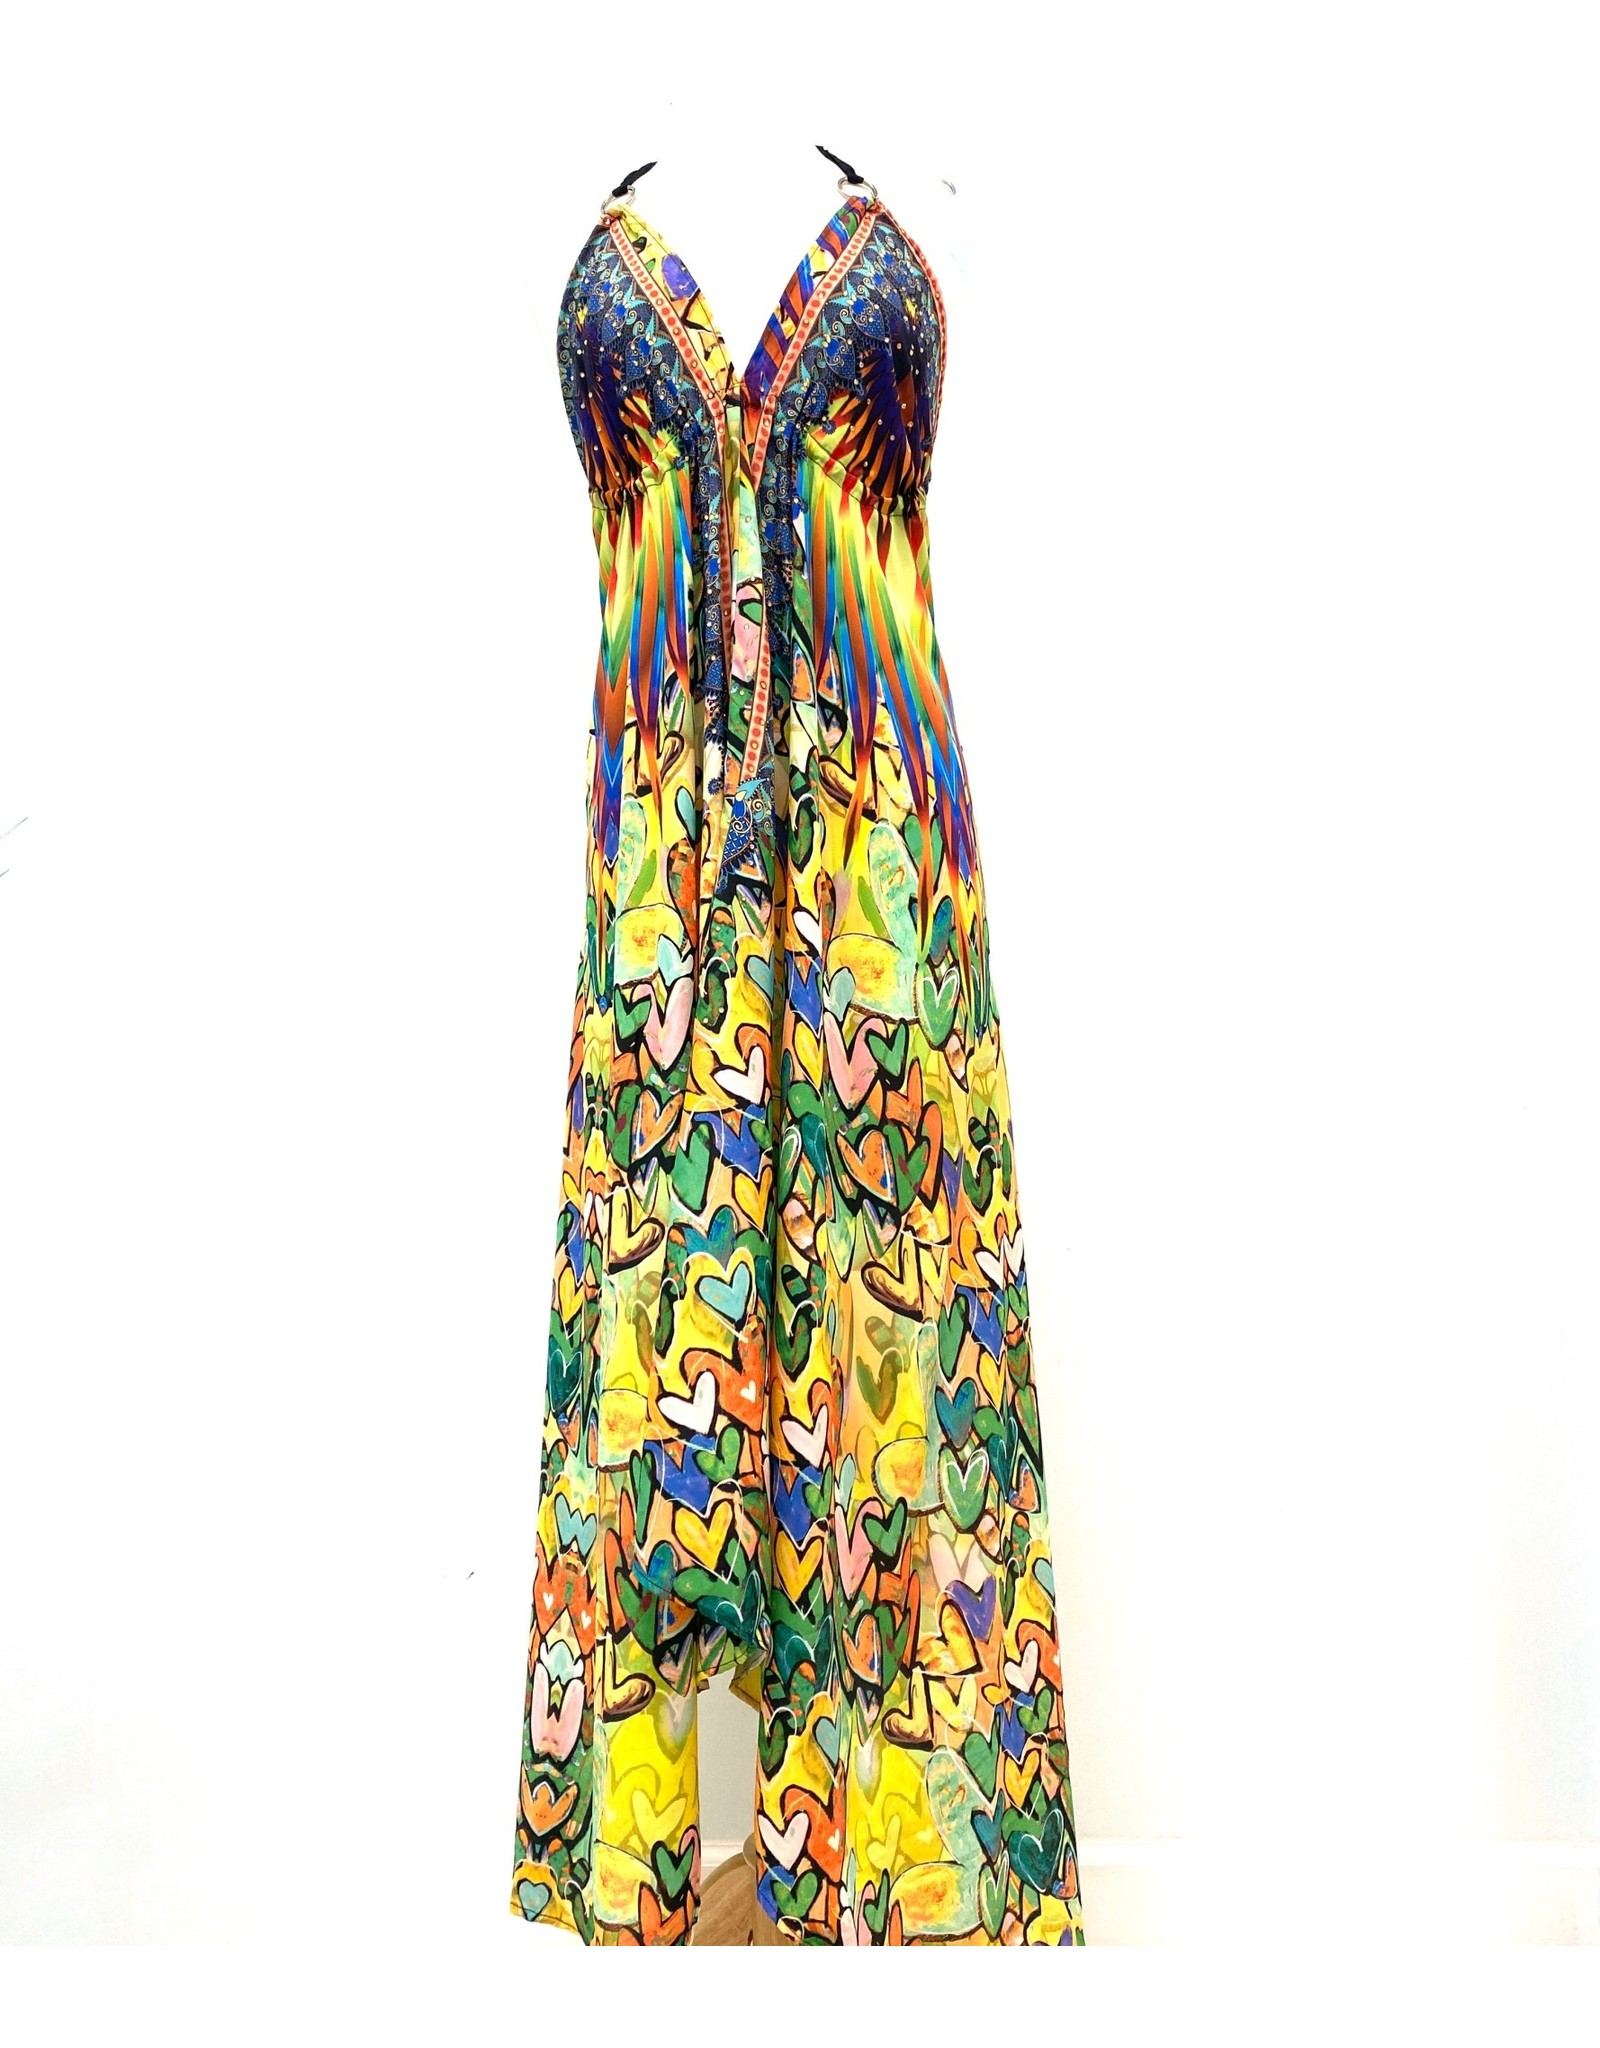 Indian Tropical Fashions All The Love Handkerchief Dress